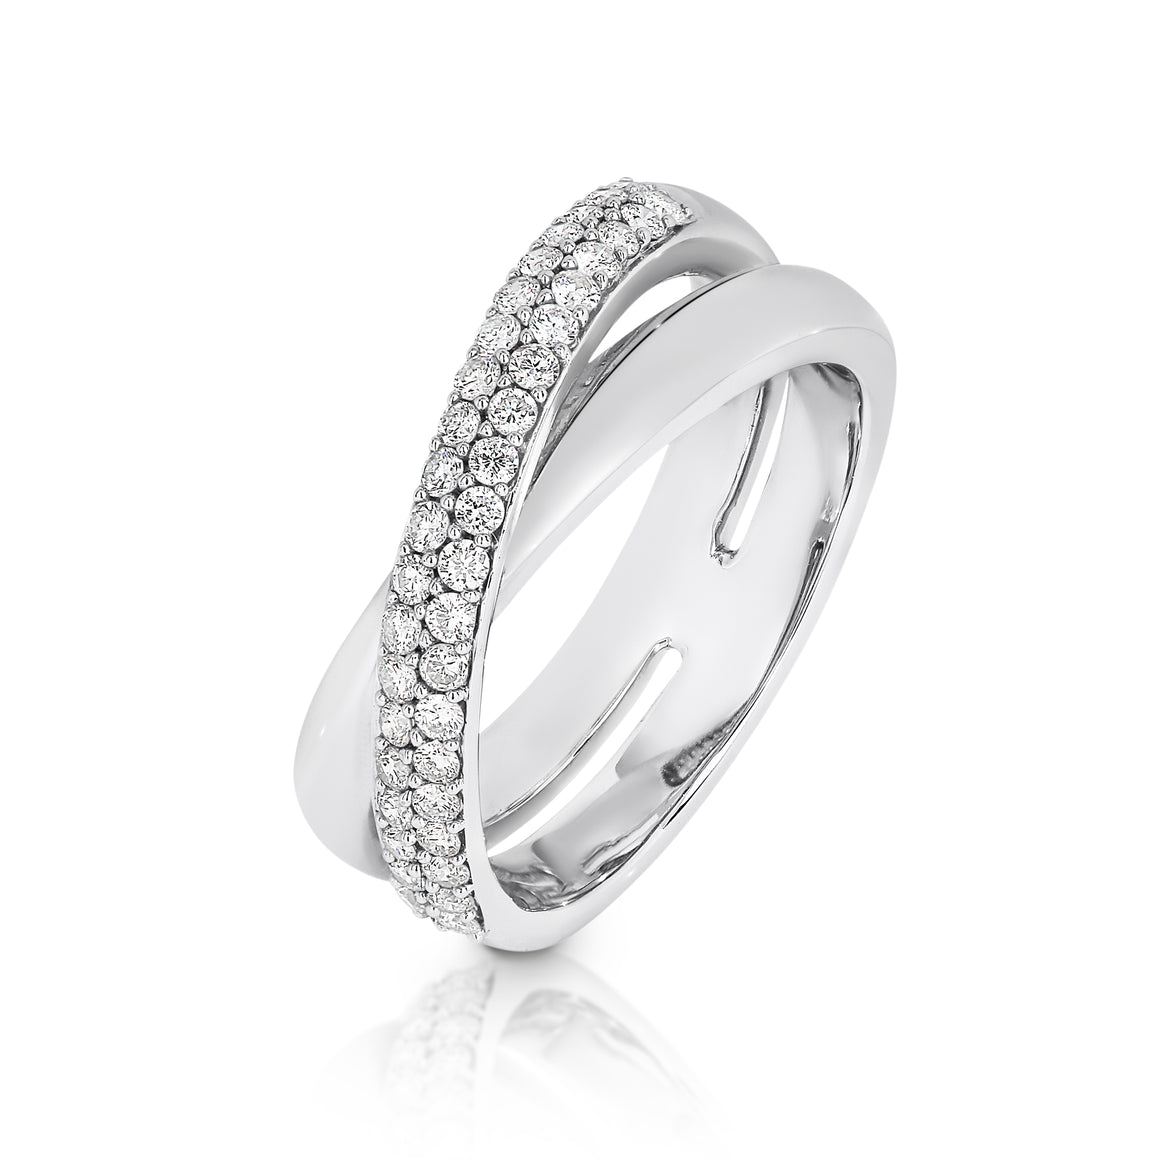 18ct White Gold Diamond 'Lanus' Ring - Gemma Stone Jewellery